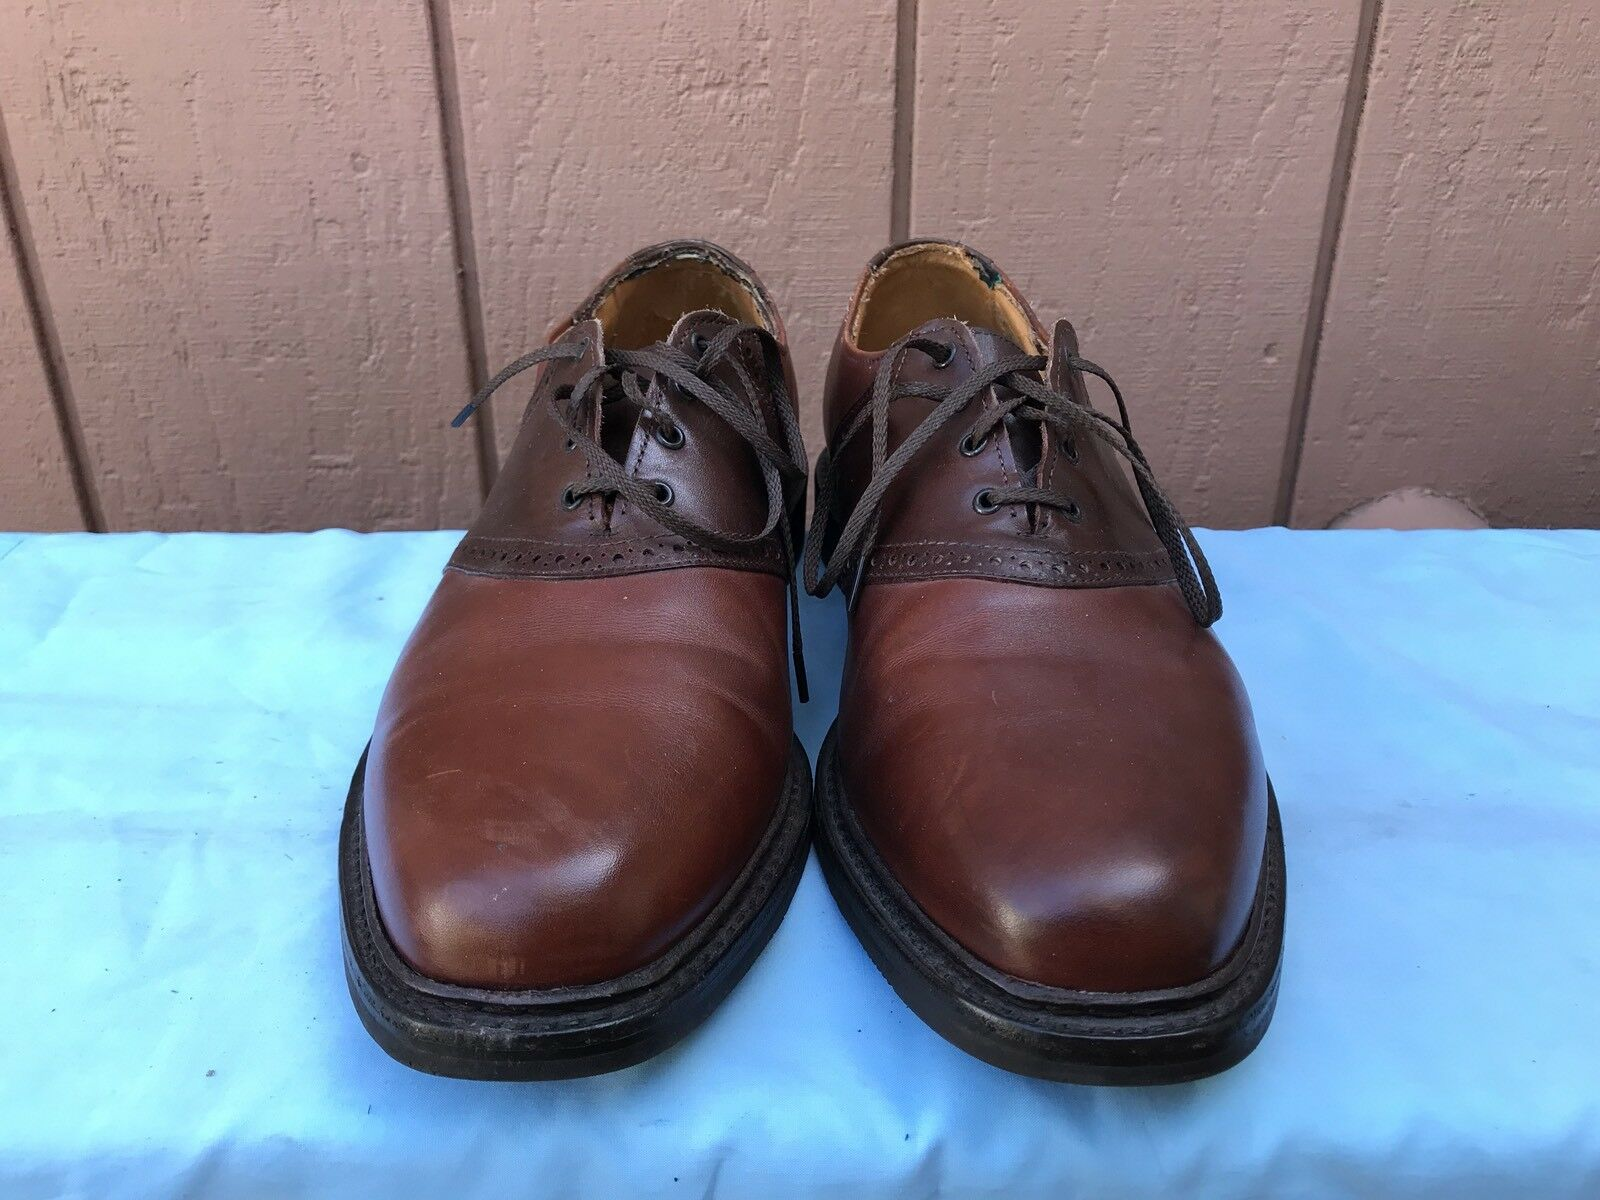 Allen Edmonds Shelton  Uomo US 11.5C Saddle A6 Oxfords Braun Leder Schuhes A6 Saddle d4600b